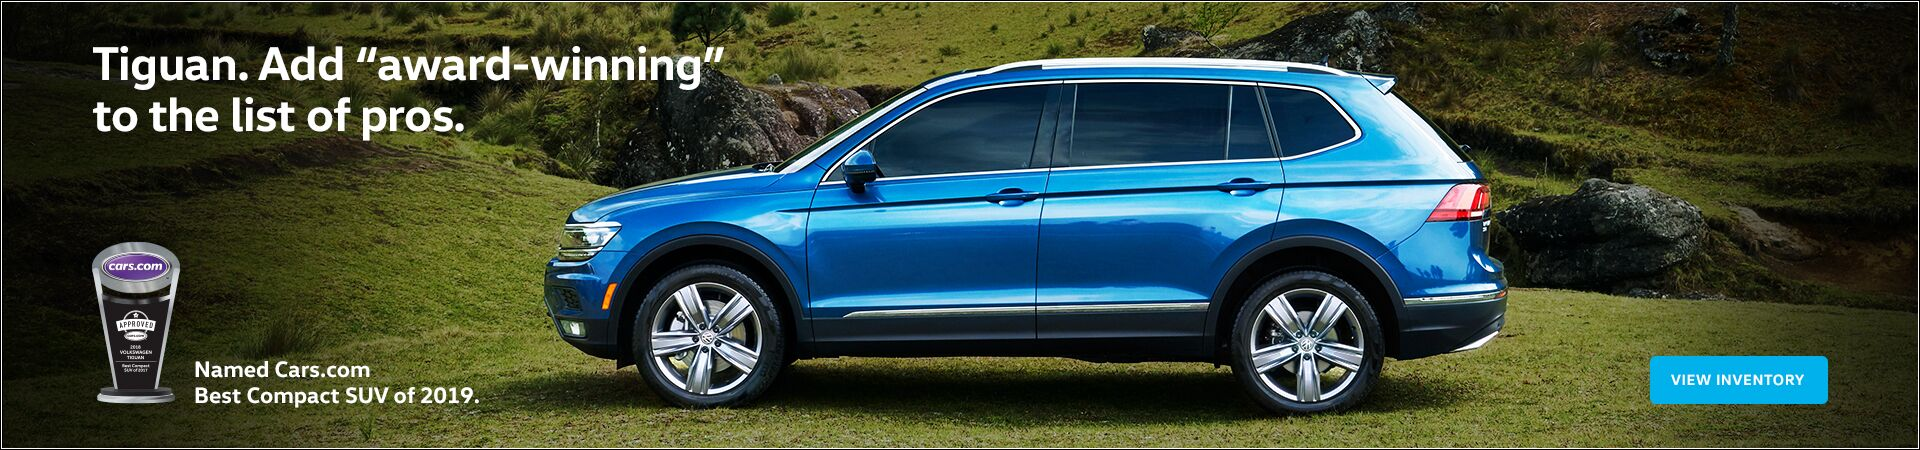 Tiguan Cars.com Best Compact SUV of 2019